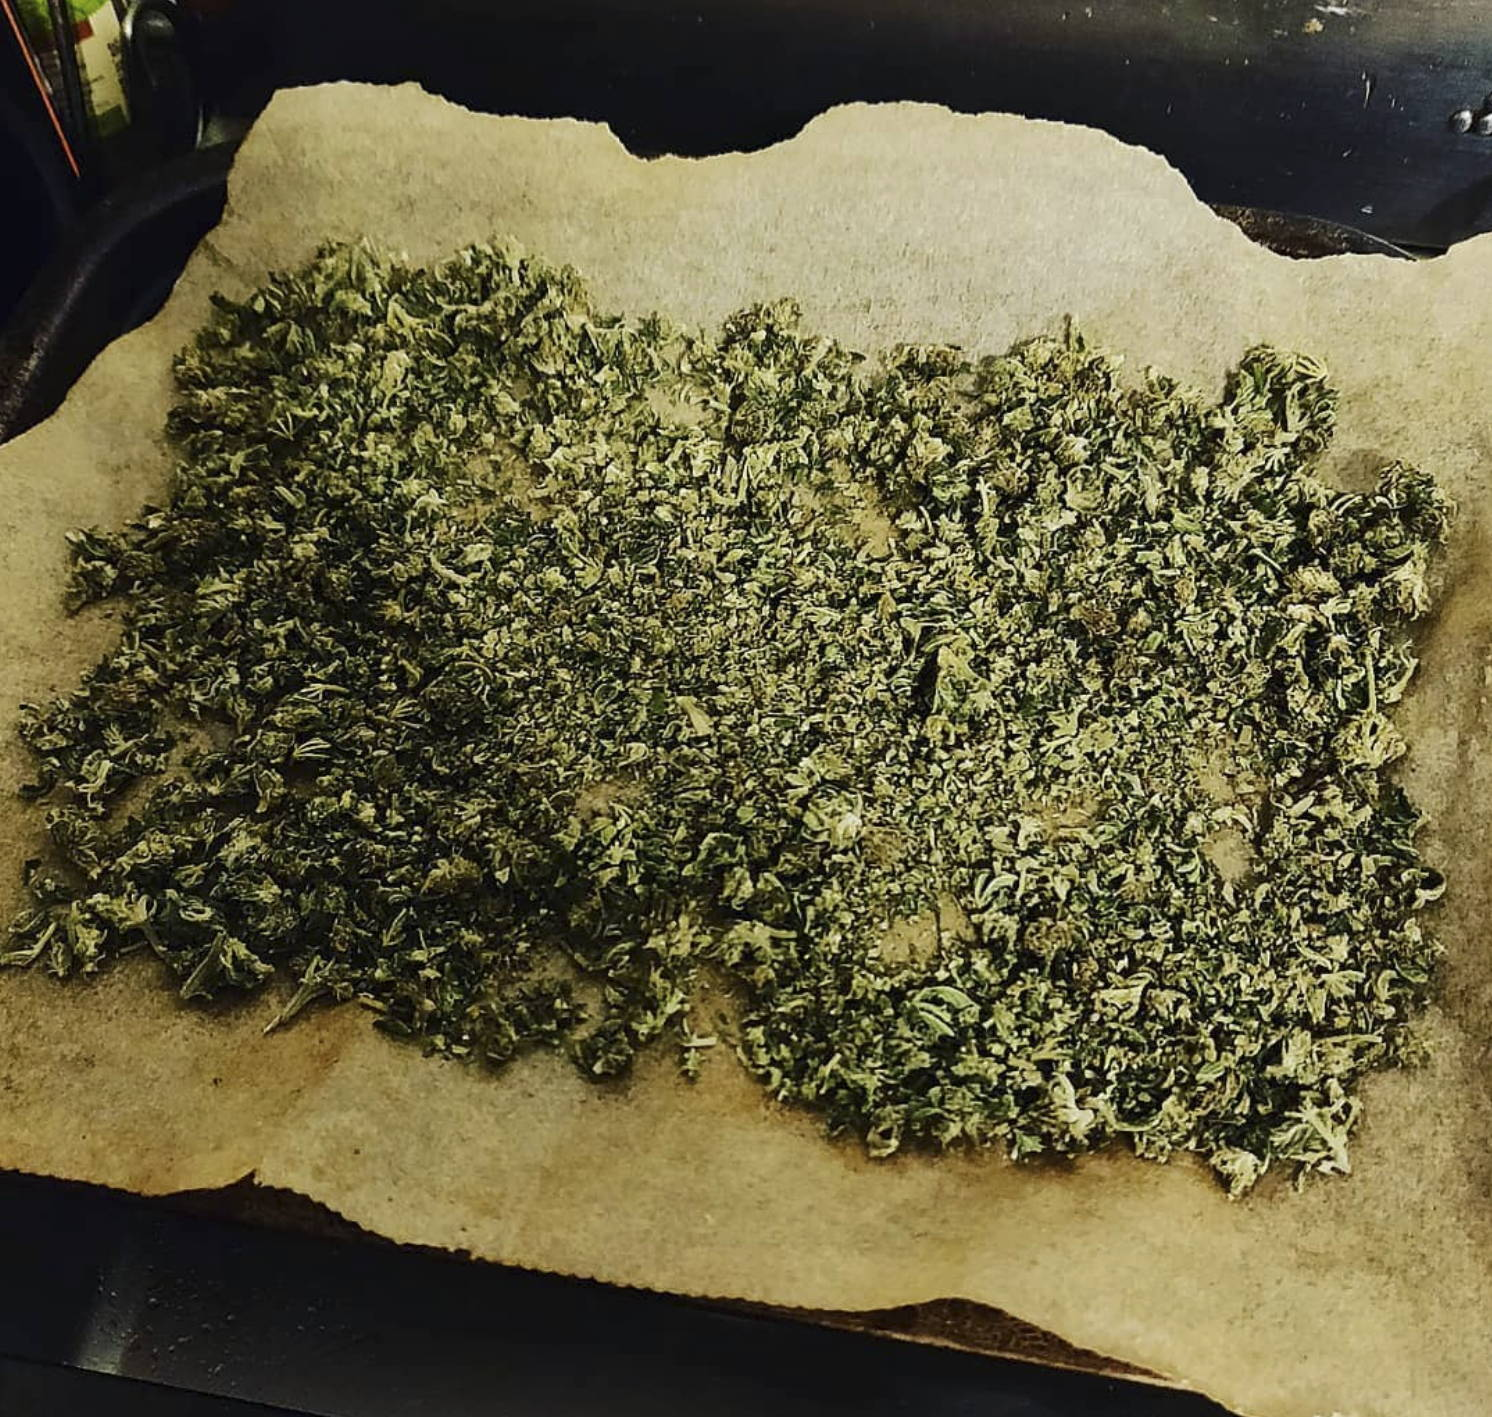 Decarboxylation of Hemp